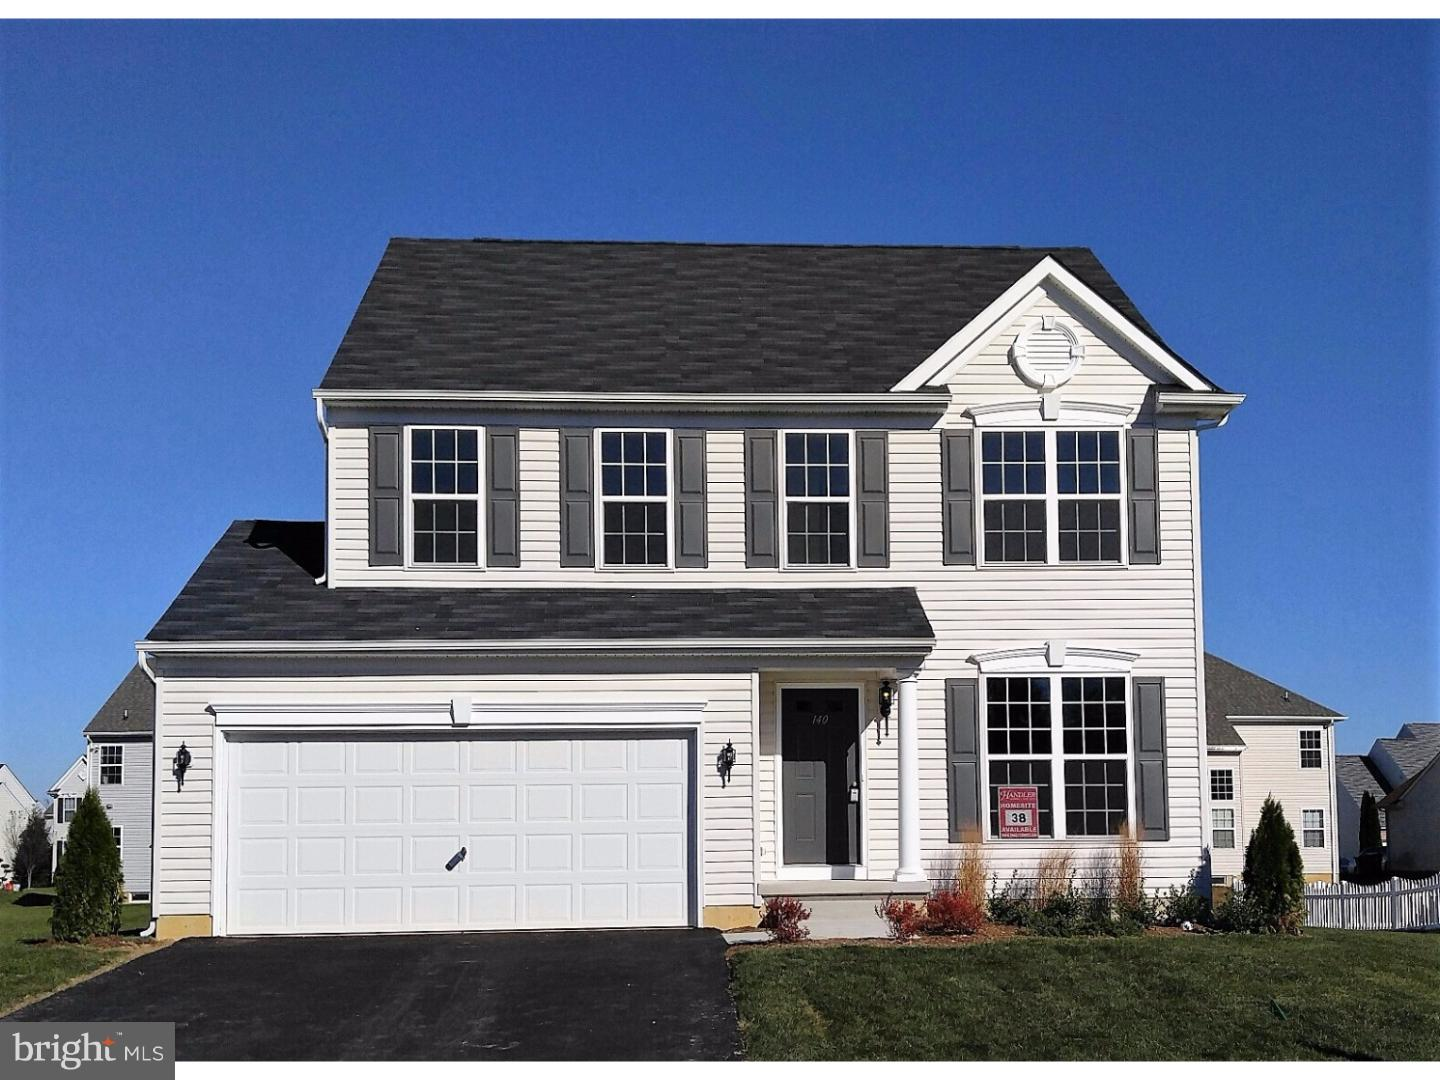 JUST REDUCED! The Fallston II 4 bedroom 2.5 bath home has it all and will be ready to move in this spring. This colonial style home is designed with today's lifestyles in mind. Enter into a warm and inviting foyer leading to the heart of the home. The kitchen opens to a breakfast area as part of the open first floor plan which allows you to be a part of what's going on in the house no matter what room you are in. There is a spacious sunroom adjoining the kitchen. A cozy fireplace is the focal point of the family room. The very generous owners' bedroom has a spacious walk in closet and ensuite bath that includes a tub and stand up shower. Big bedrooms and linen closets for storage add convenience and space. Rough-in plumbing for a future powder room in the basement is thoughtfully added for convenience. The architectural shingles, carriage style garage doors and 9 foot first floor ceilings add value to your home as well as elegance. All this and more in the accredited Appoquinimink school district. Call for more information! Pictures may be of a model home with upgraded features, or a similar home.